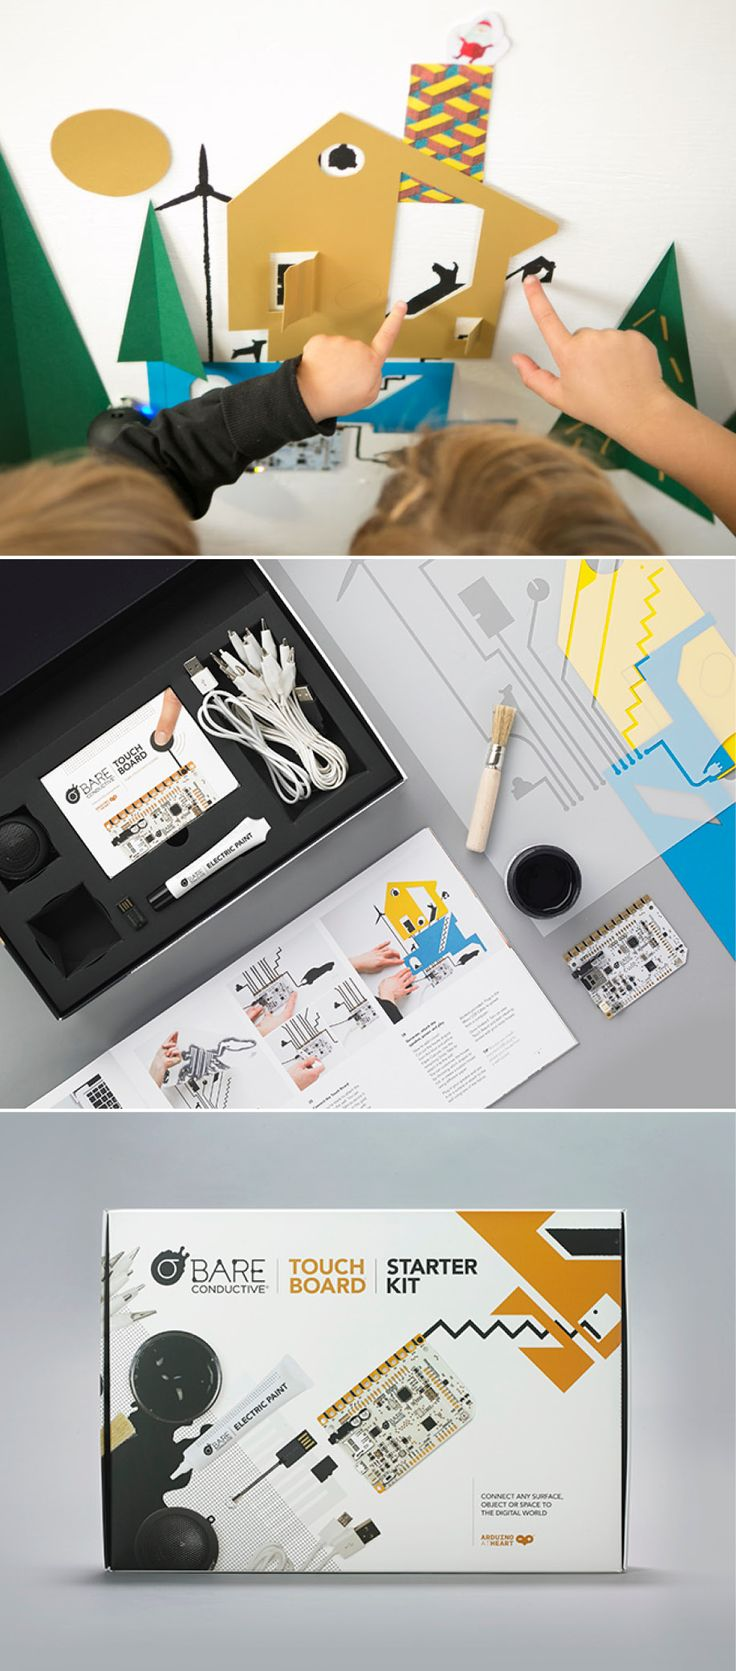 Best images about new tech on pinterest beehive